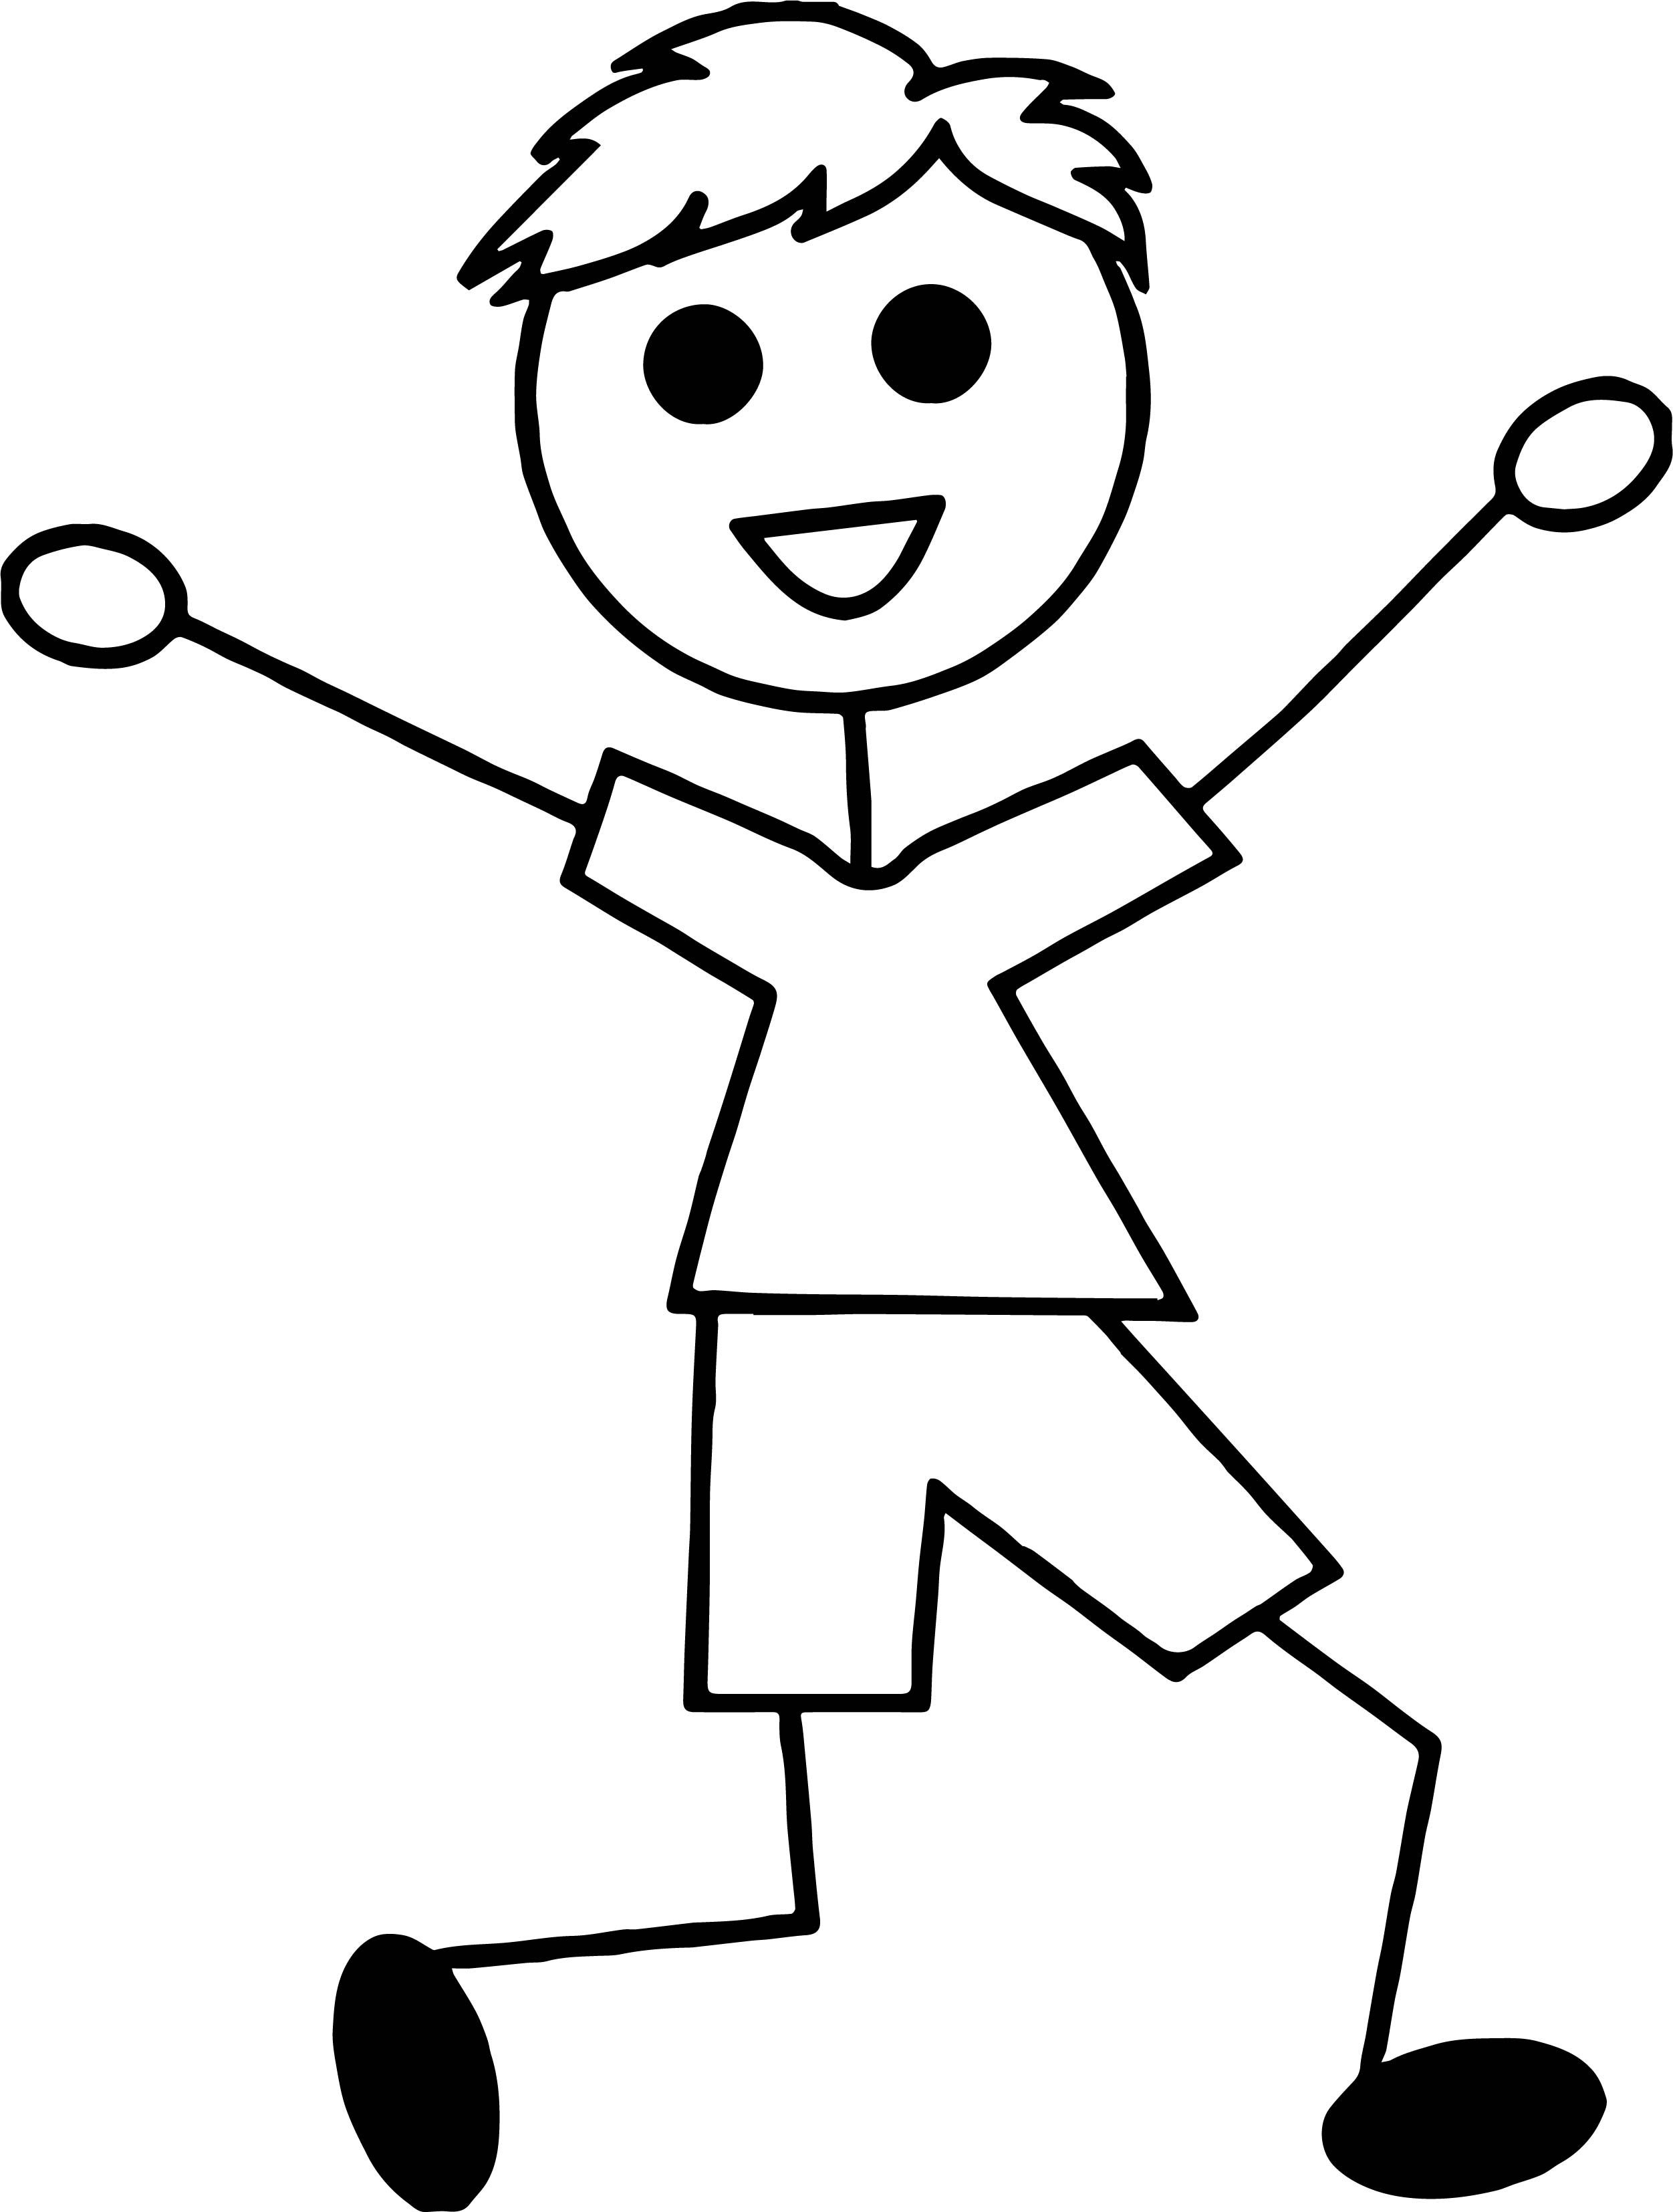 Stick Boy Coloring Page | wecoloringpage | Coloring pages ...